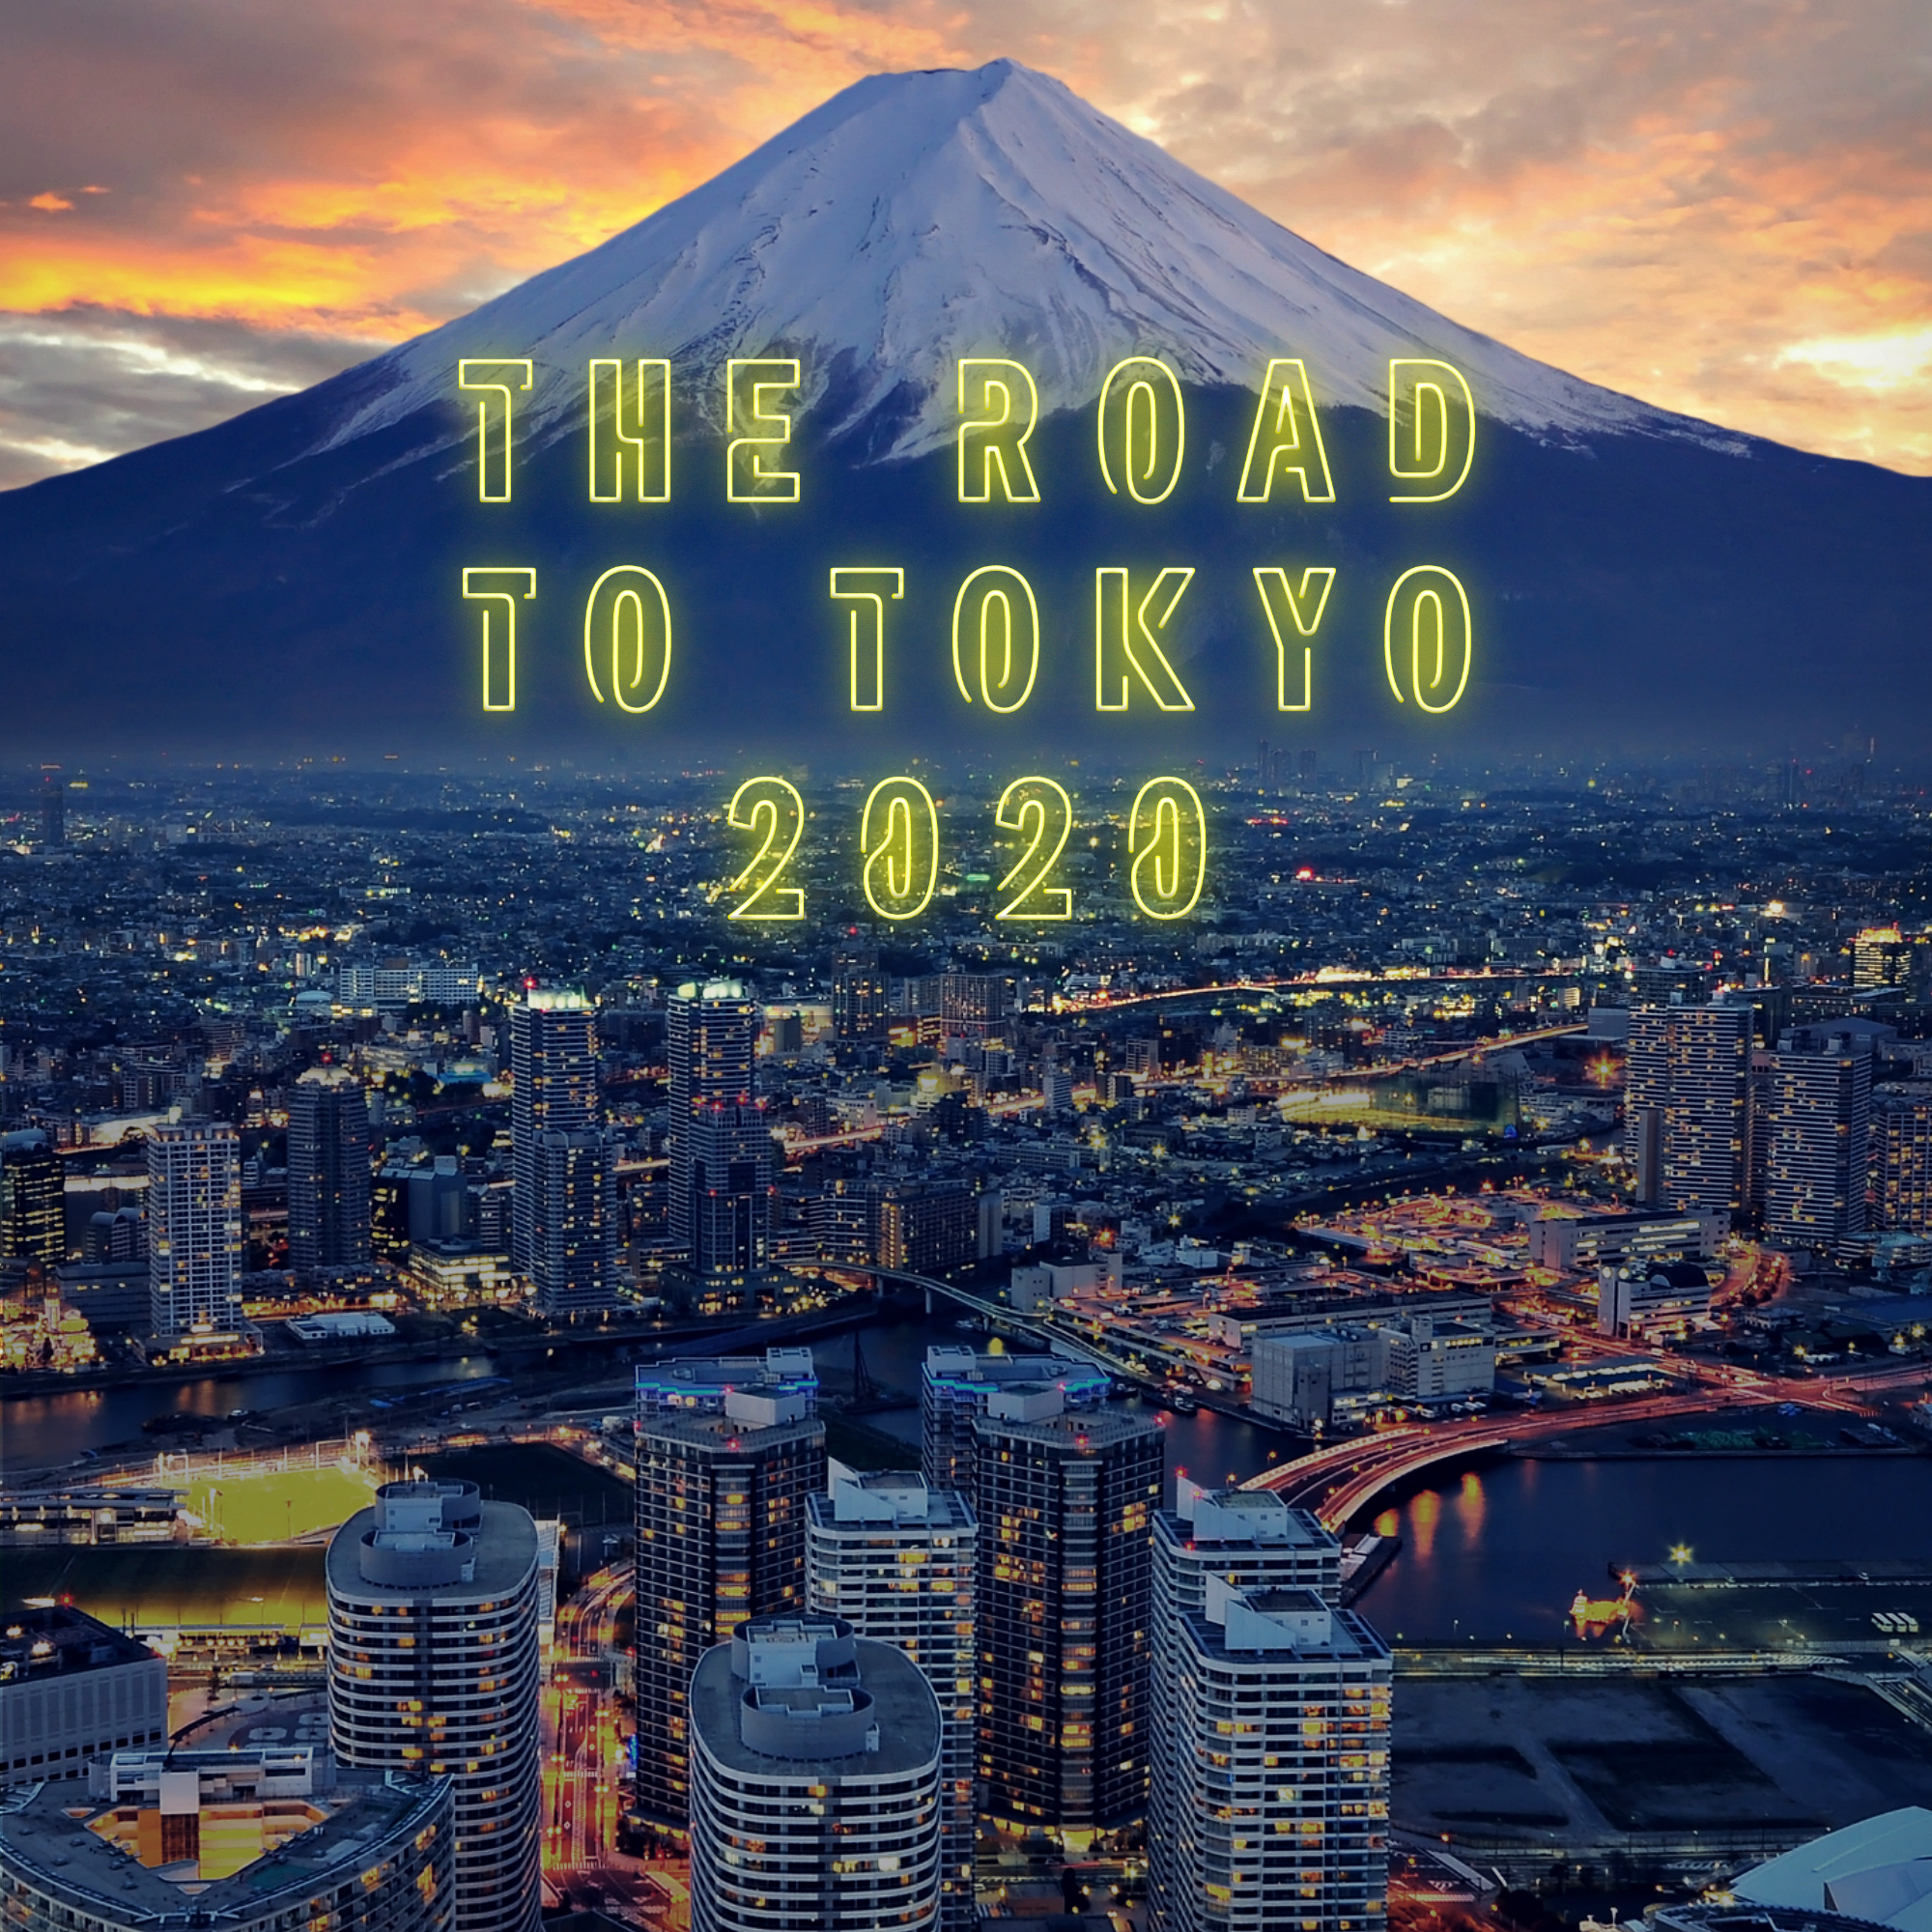 SUBSCRIBE TO THE ROAD TO TOKYO 2020